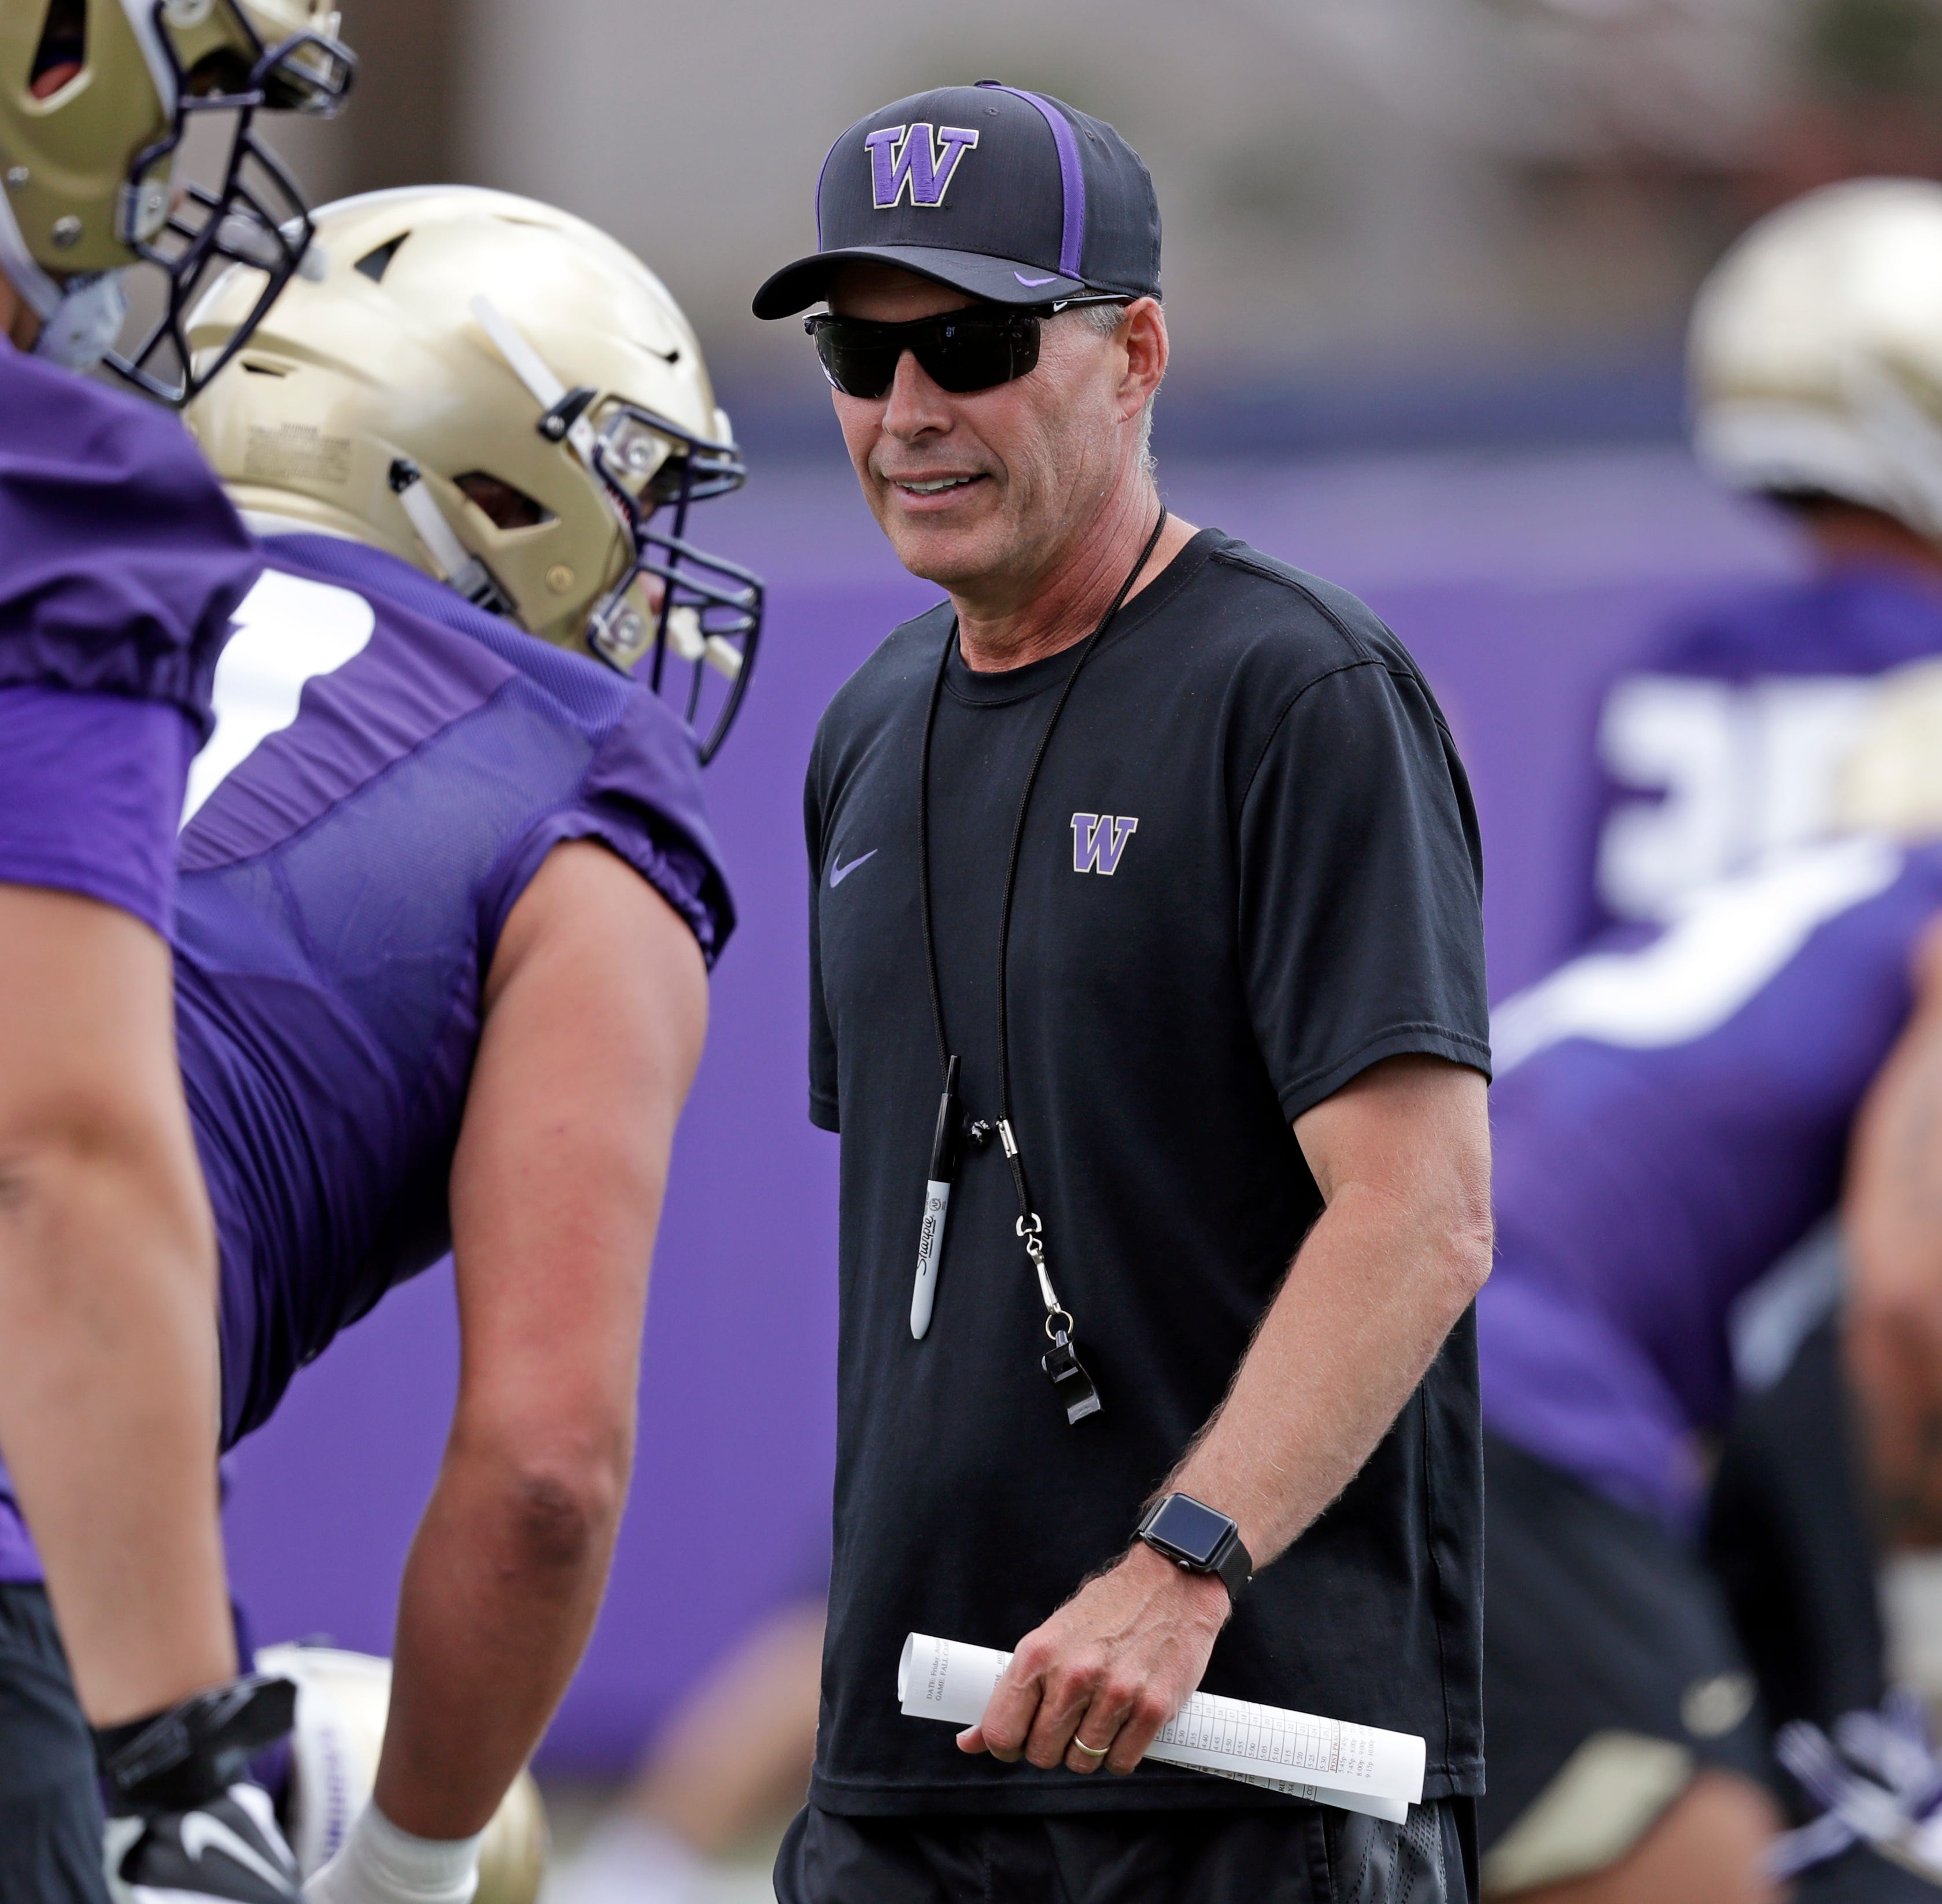 Huskies lead Pac-12 favorites in search of league redemption